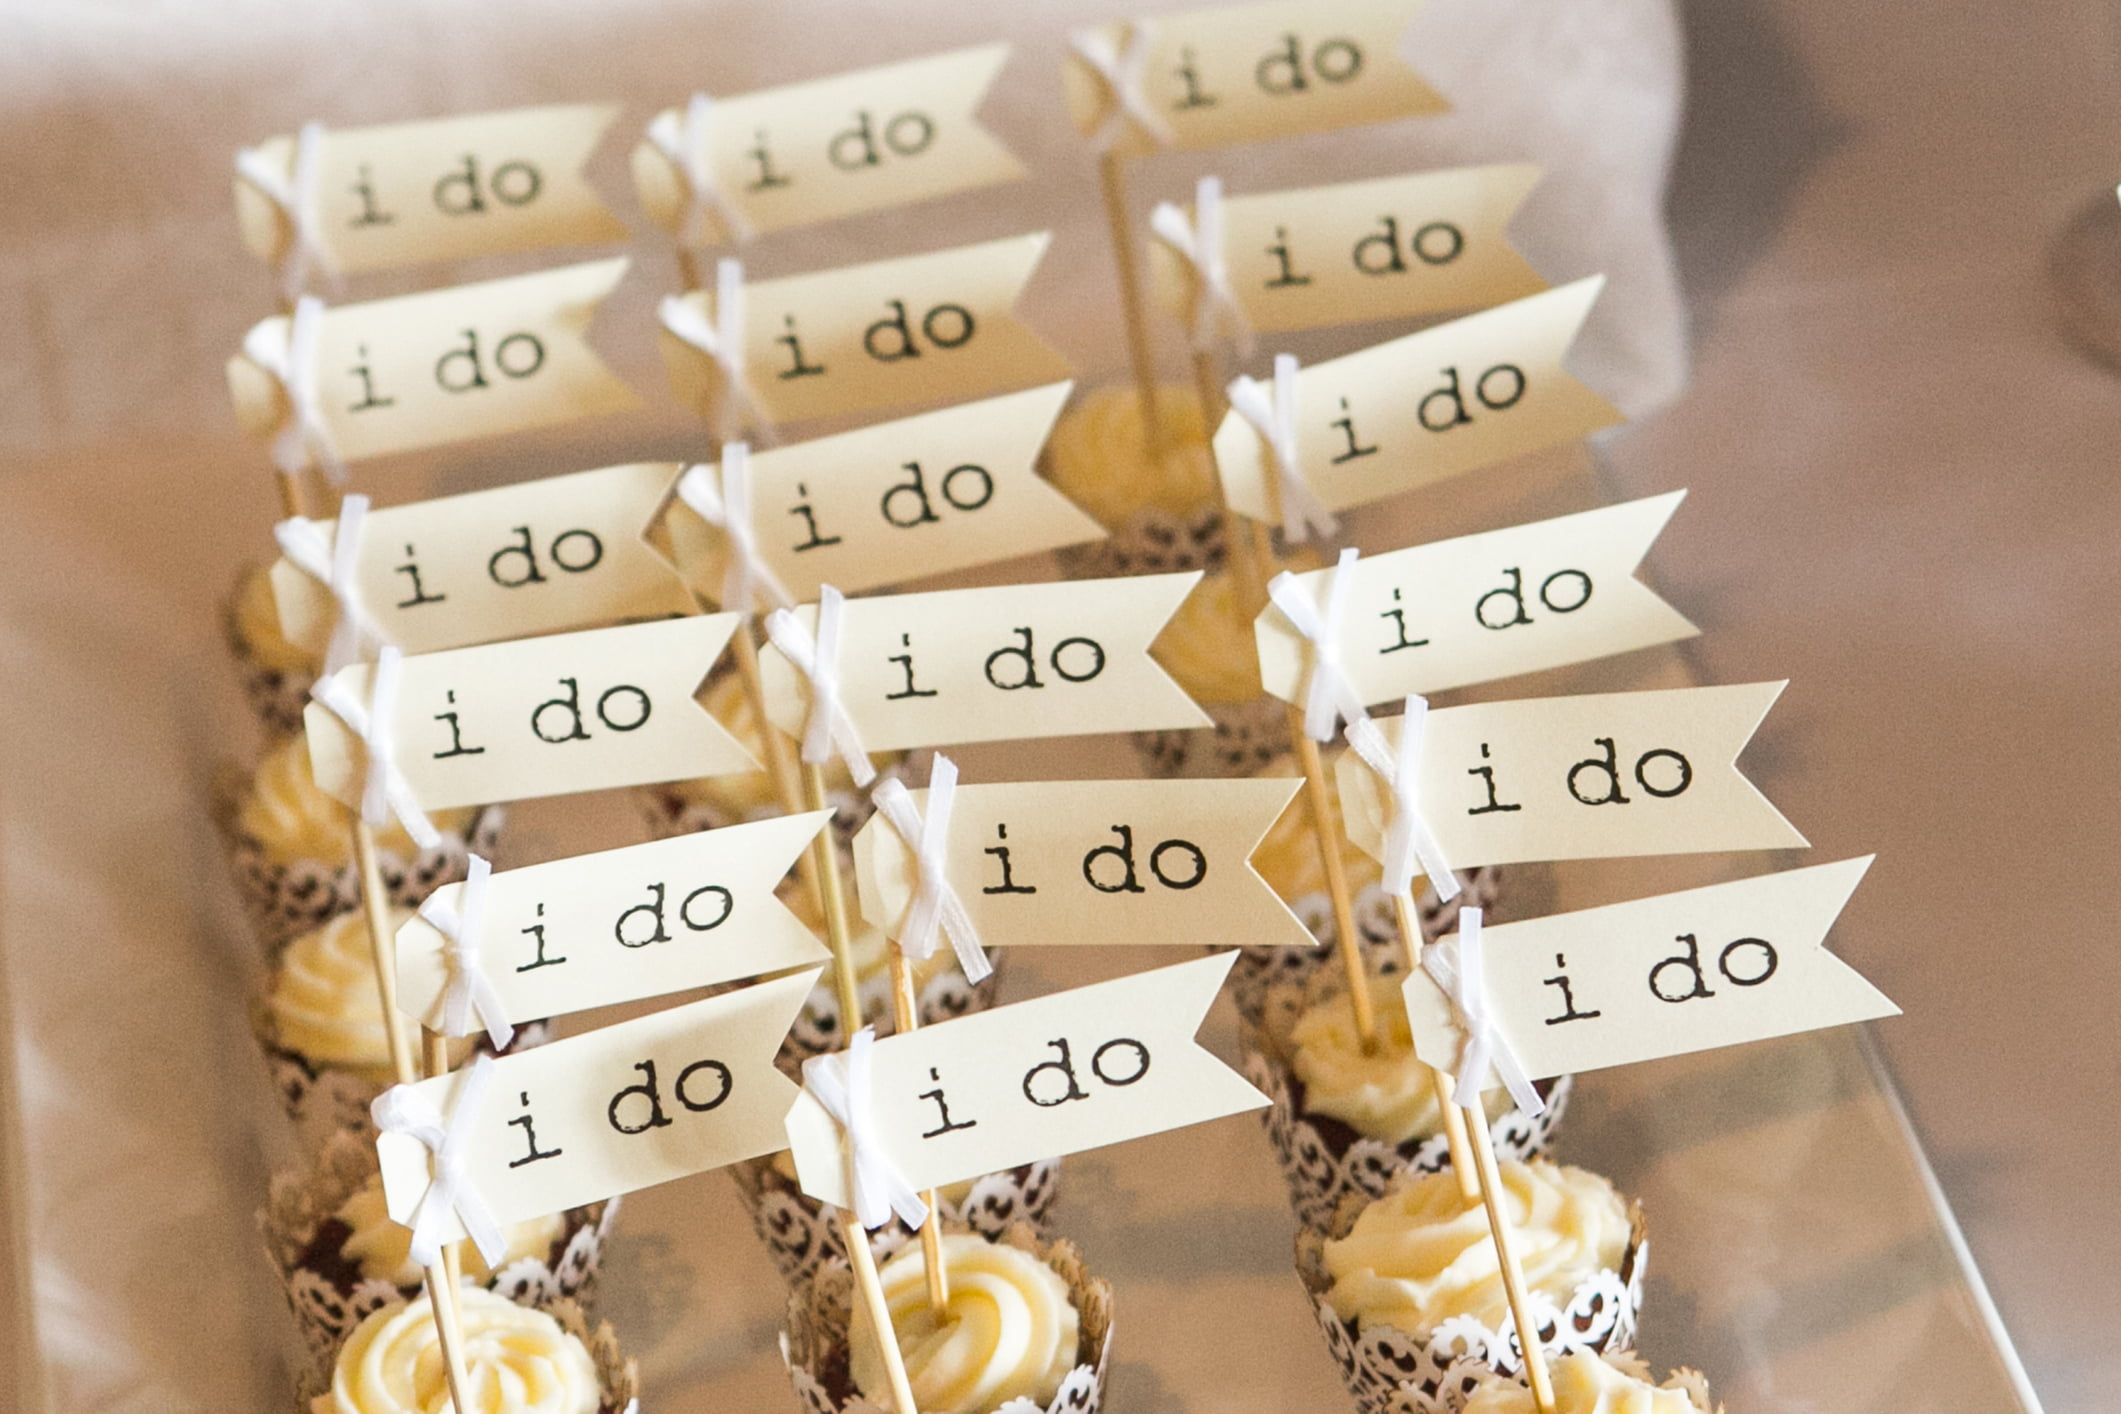 A row of Row of 'I Do' wedding cupcakes.